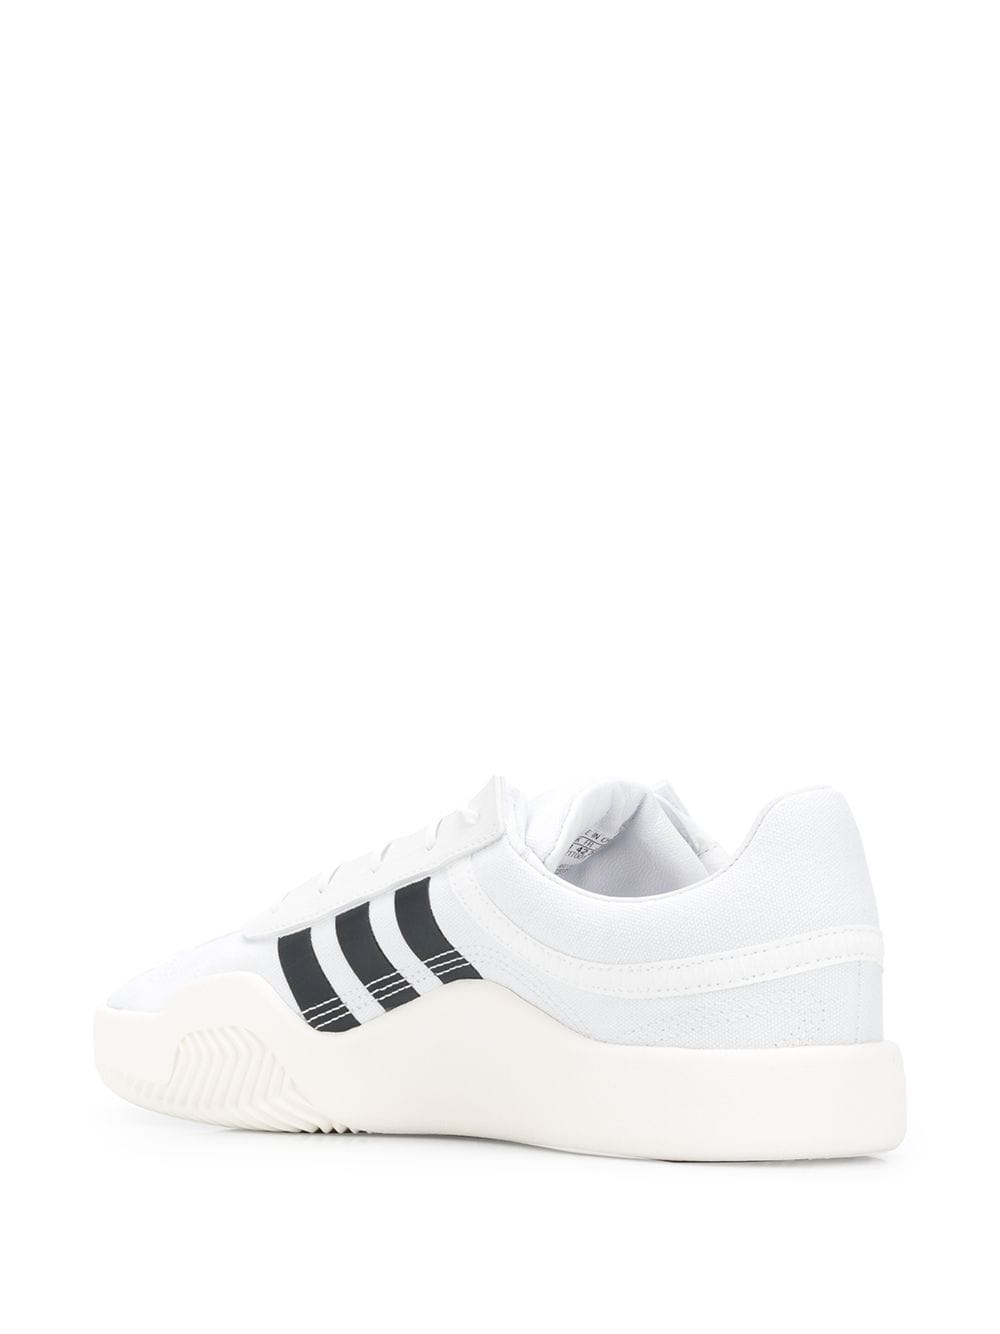 Picture of Adidas Y-3 | Low-Top Pro Skate Sneakers